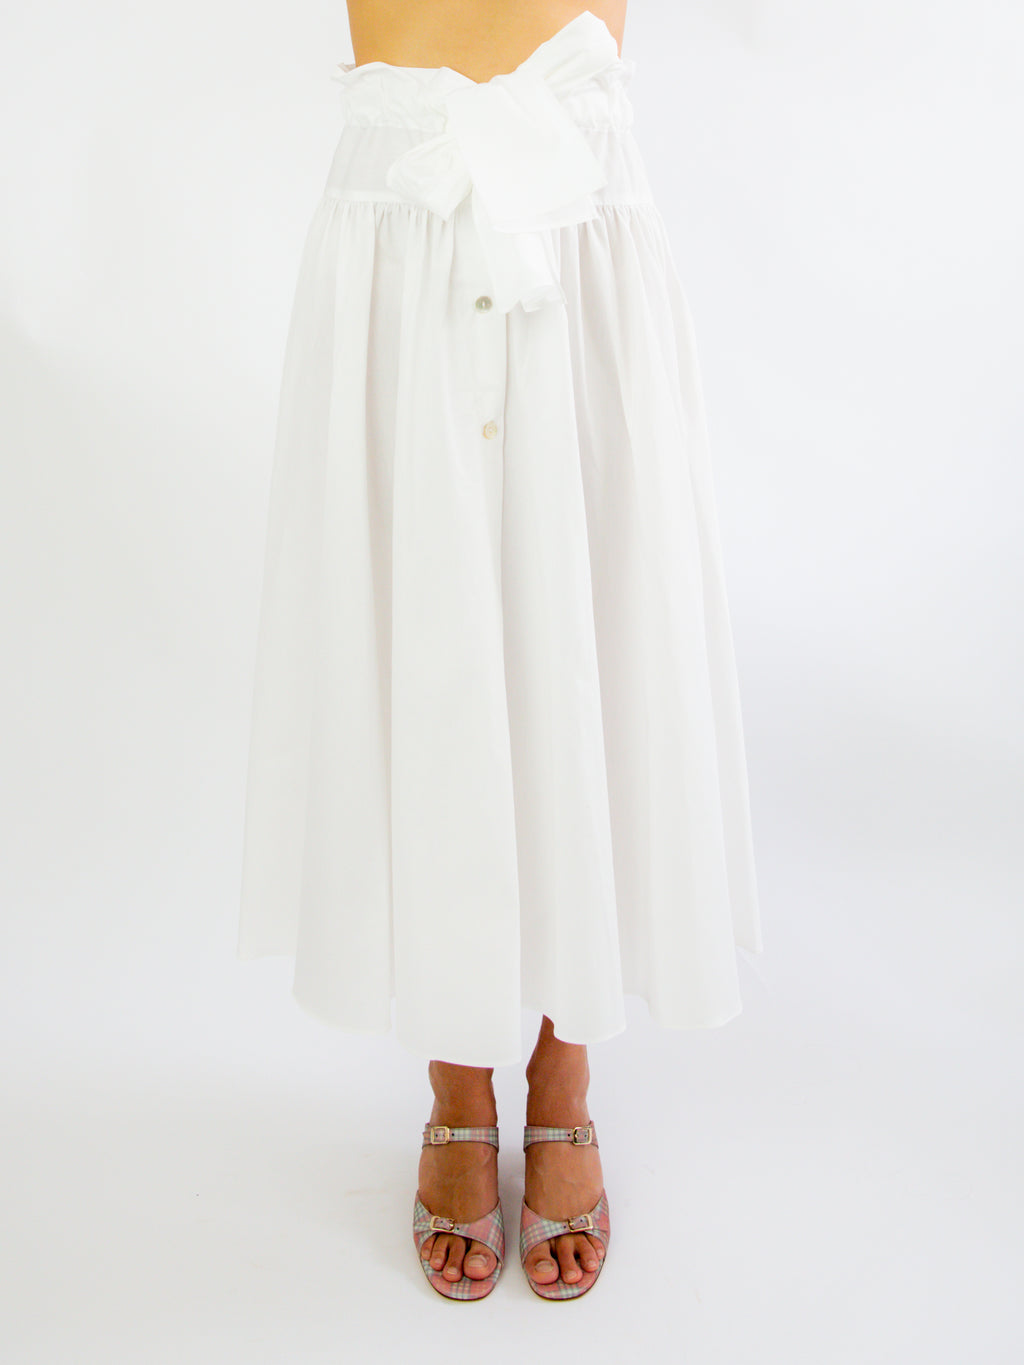 Carlita Skirt - White